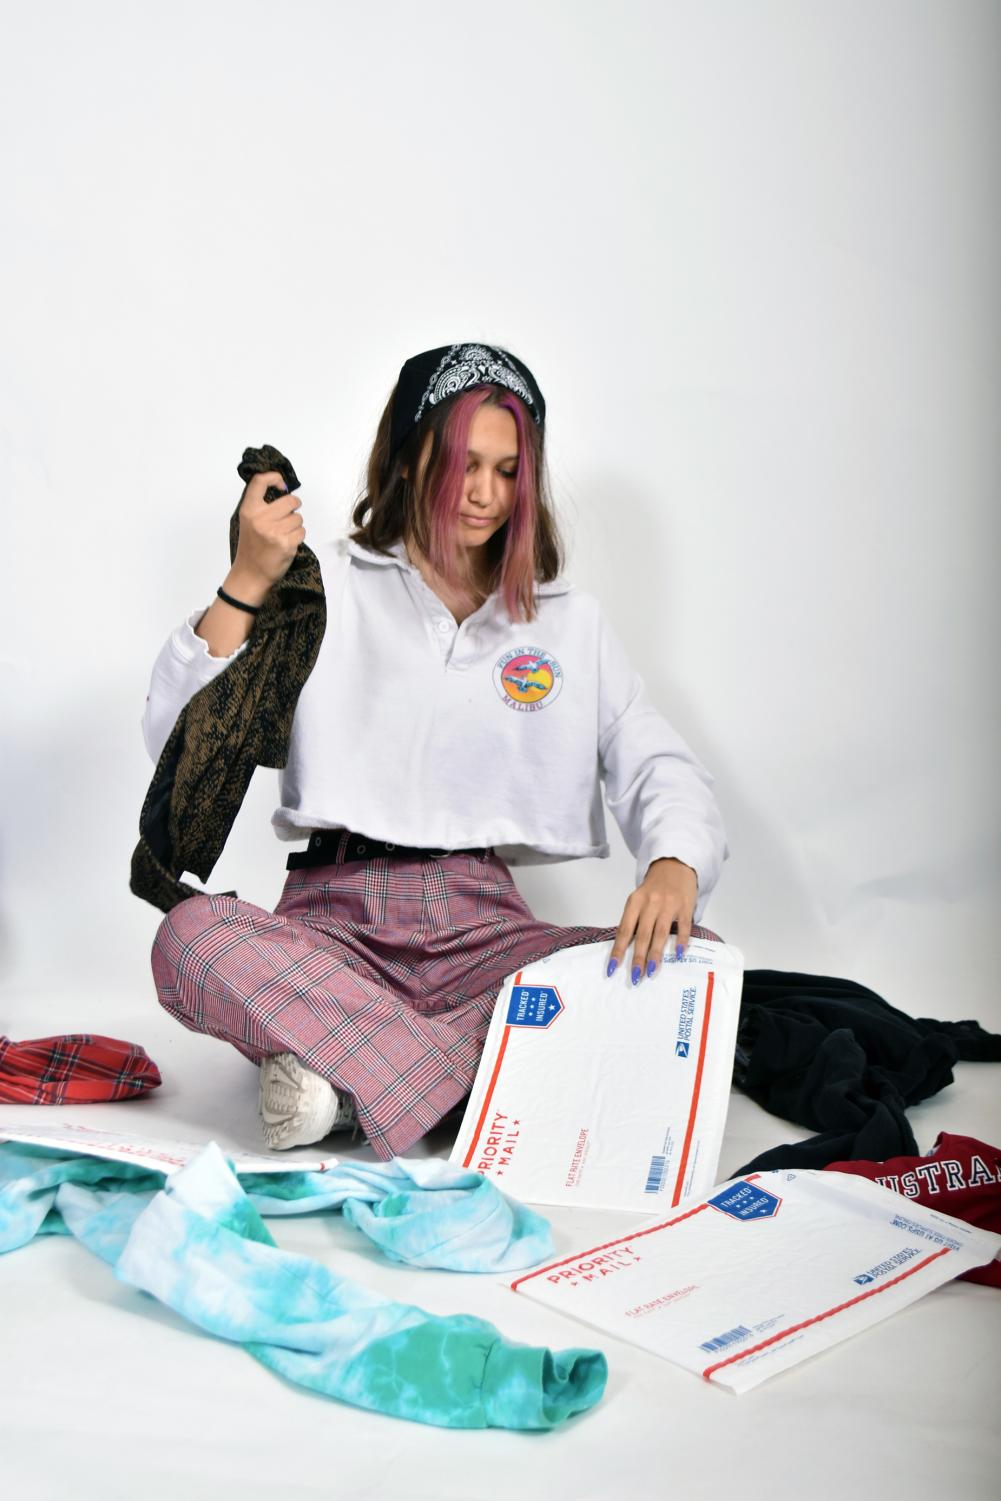 """Packing and shipping clothes is just another part of the job for people who sell their clothes on Depop. Maryn Johnson, a sophomore, is a user of the app where she has sold some of her clothes. """"[Depop] is a really easy way to find clothes for cheap from brands that I wouldn't really buy from usually,"""" said Johnson."""